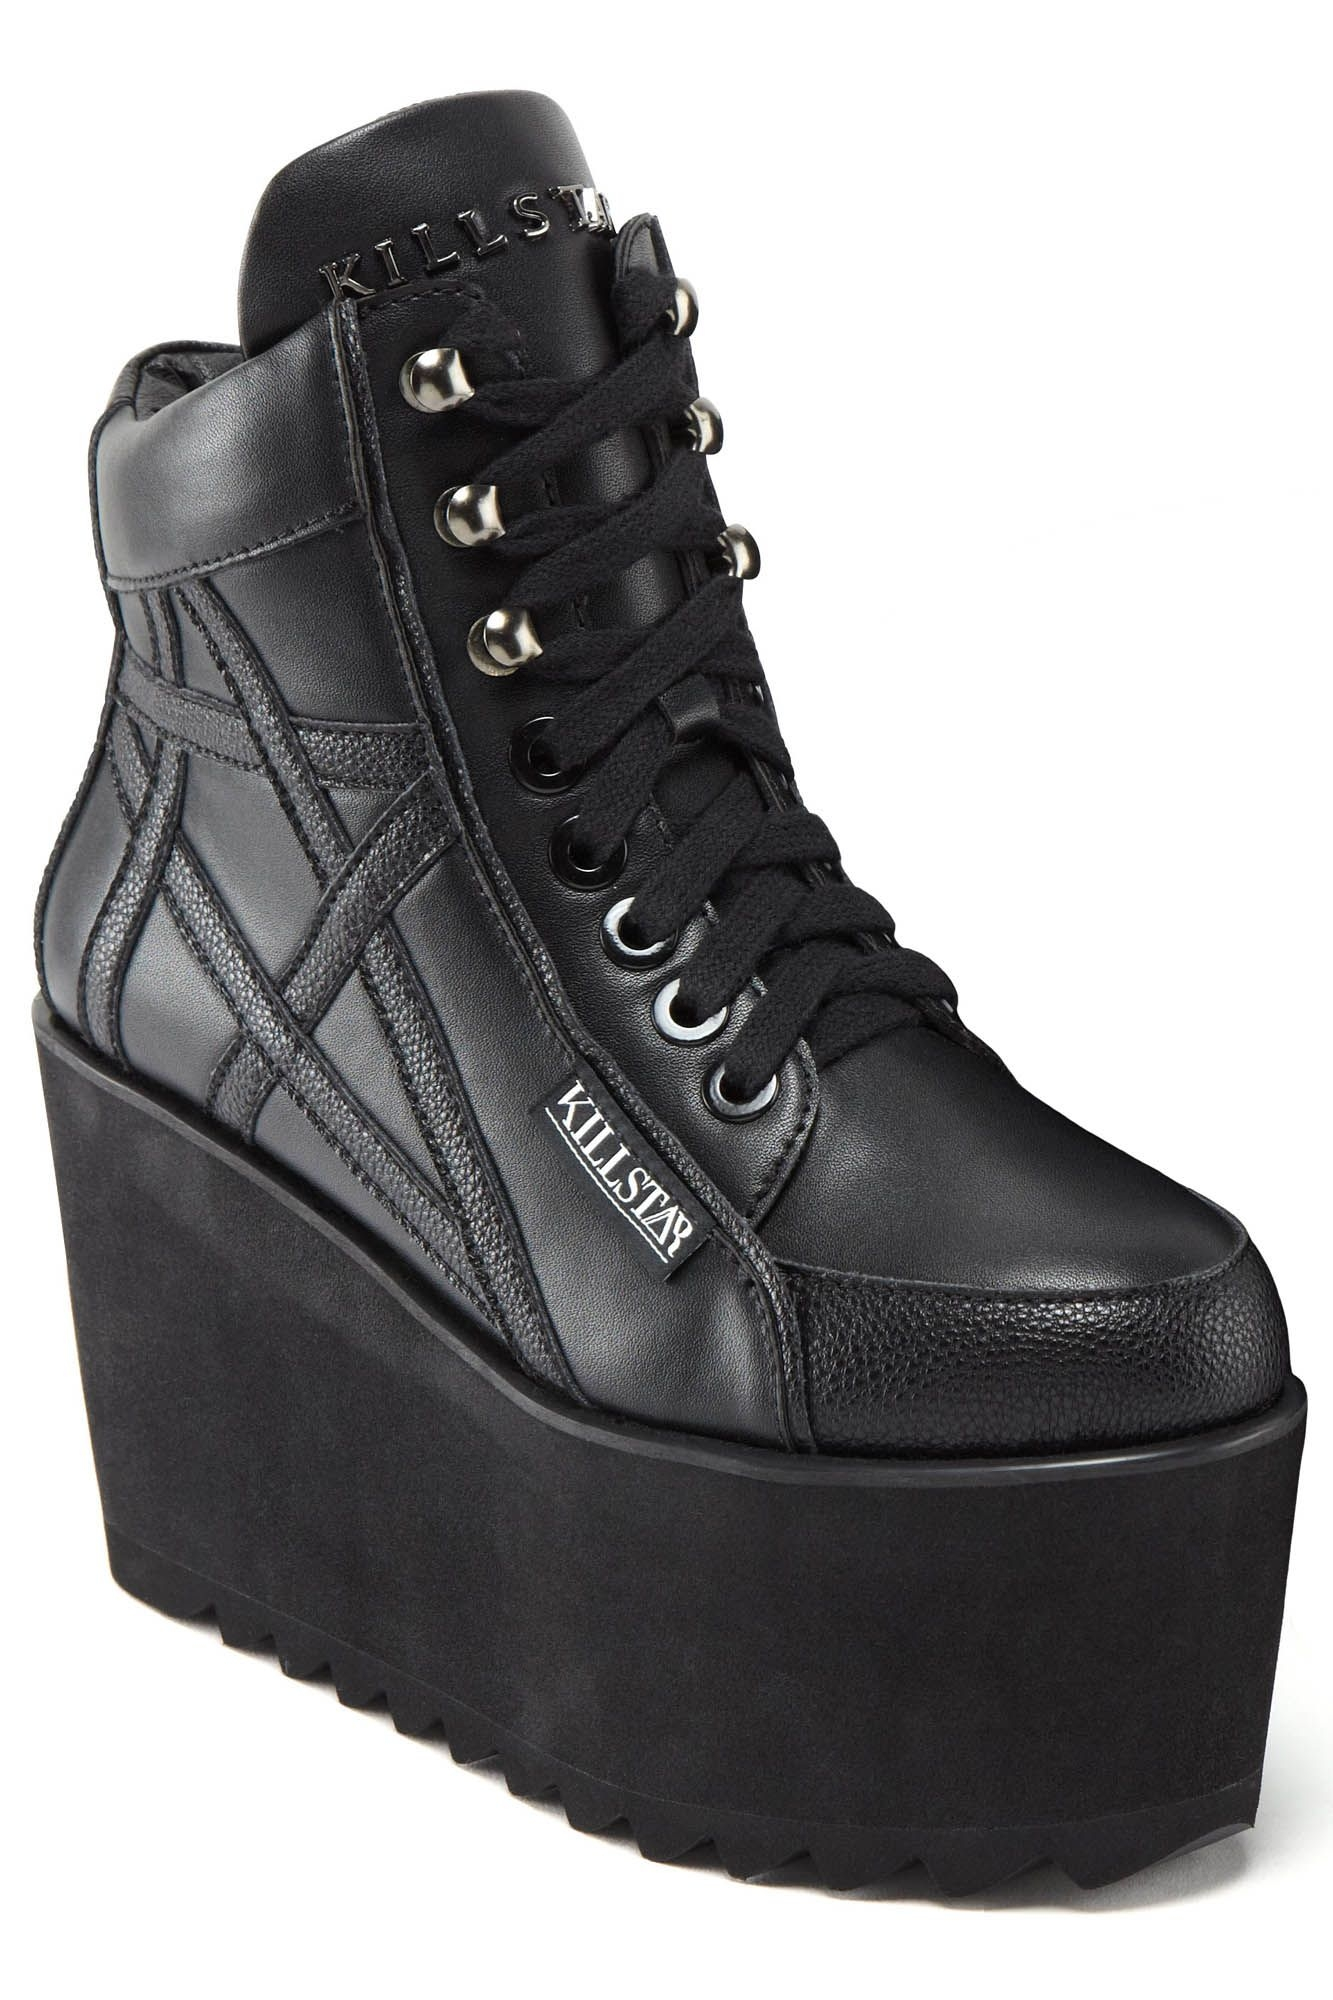 ks2195_chaussures-trainer-plateforme-gothique-glam-rock-malice